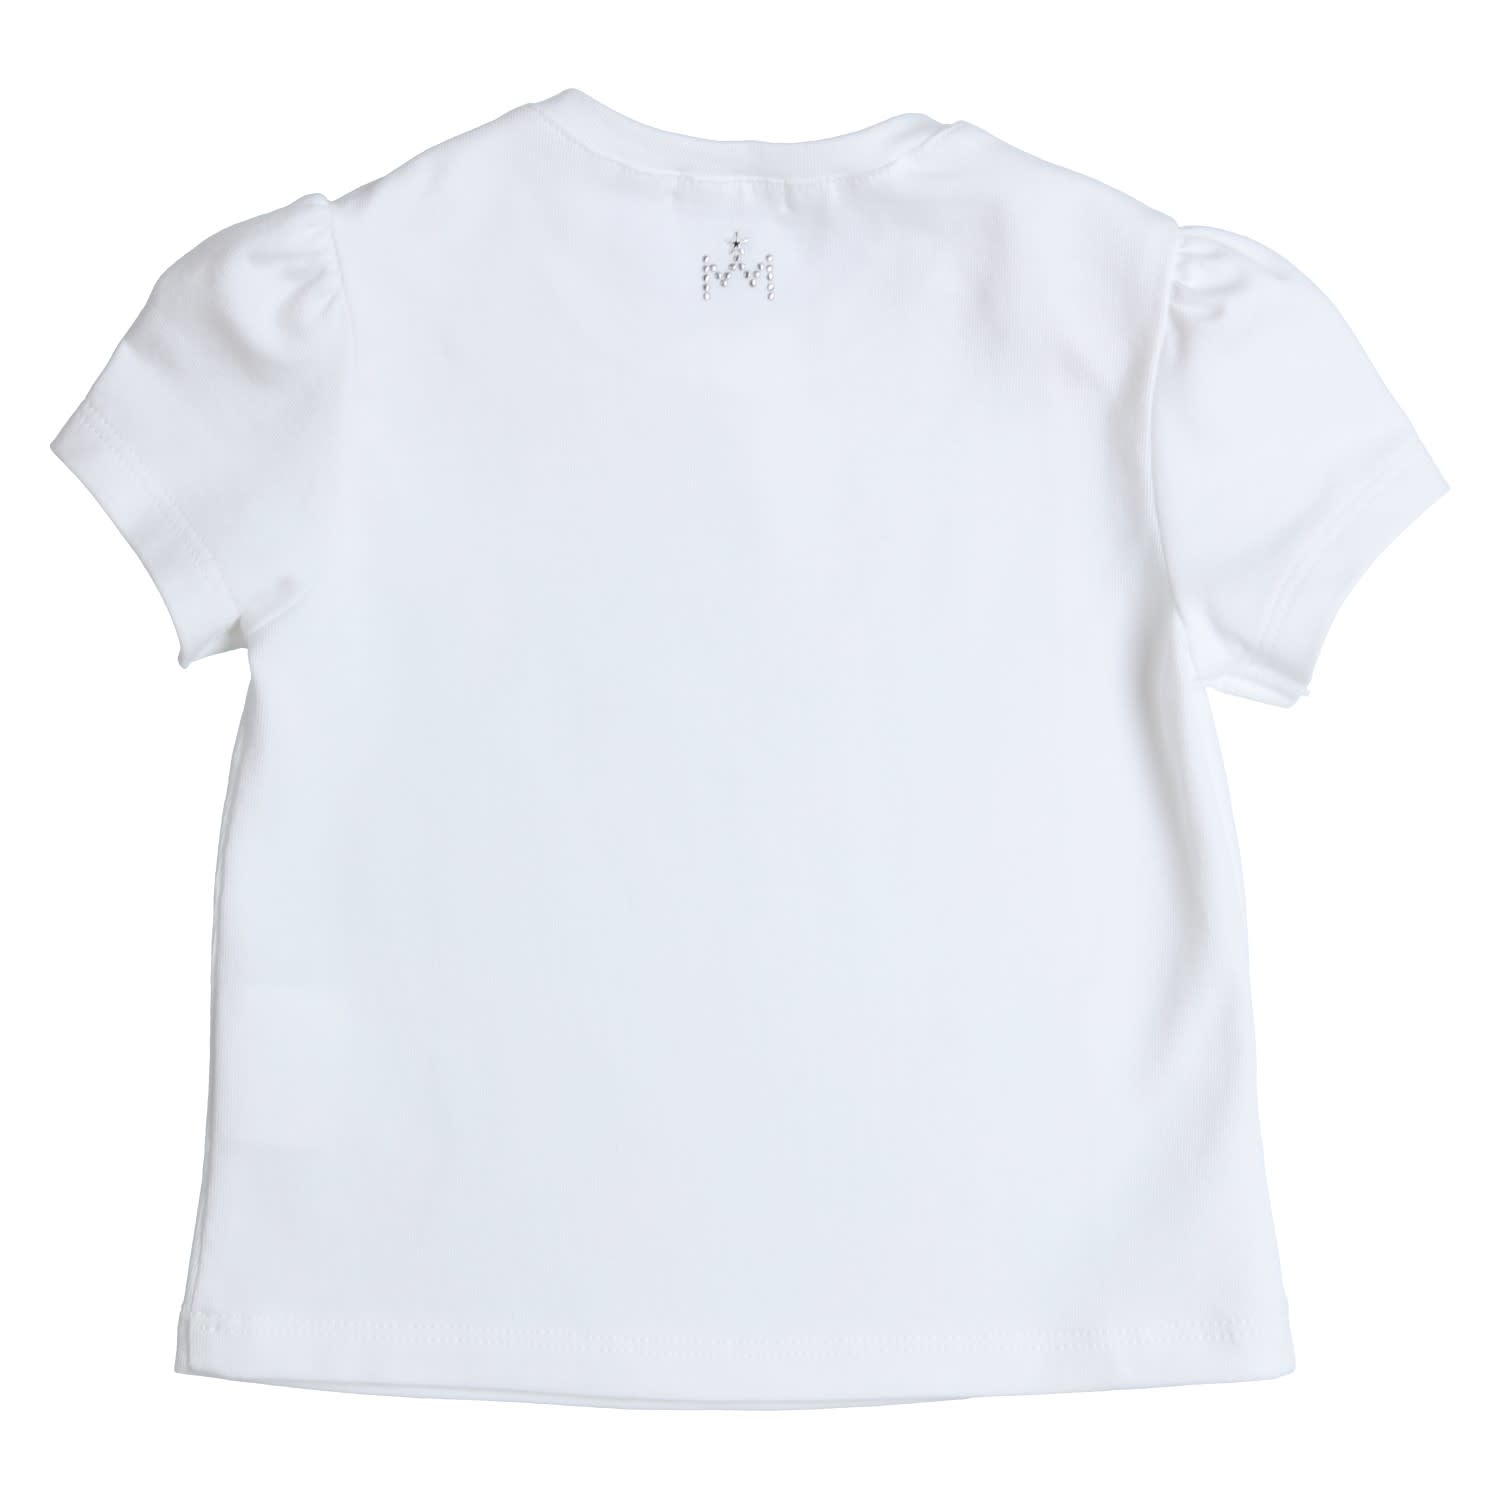 Gymp Tee White Bow Pink